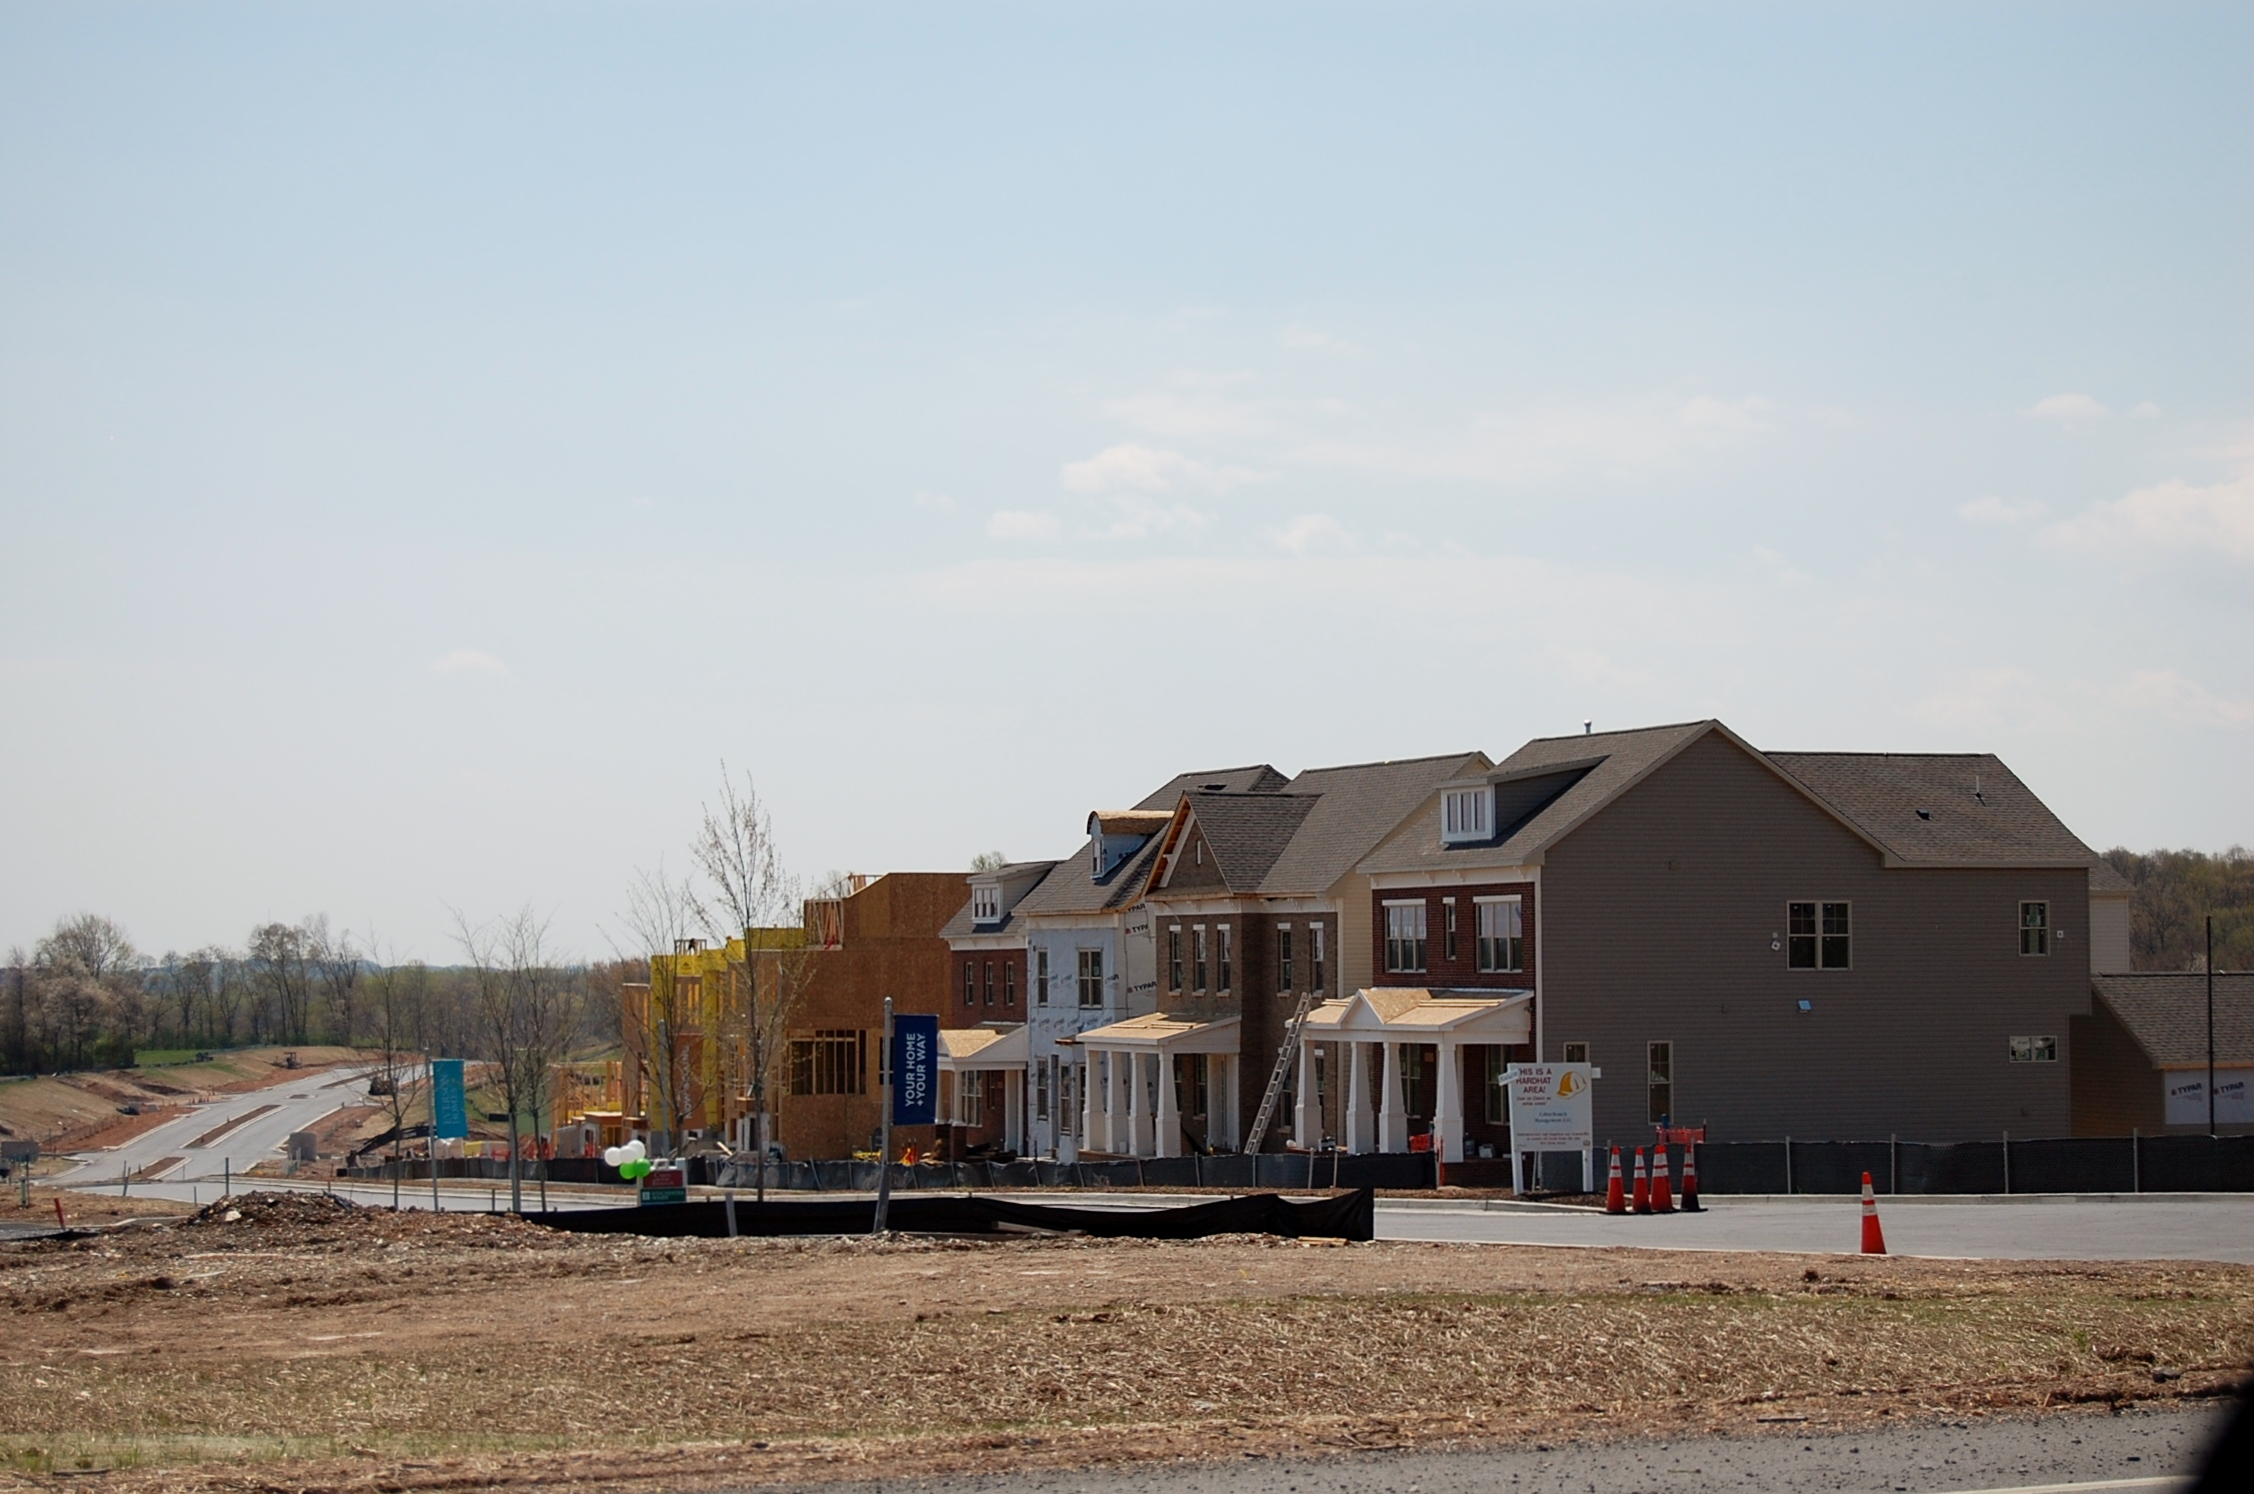 cabin branch boyds clarksburg new homes for sale next to